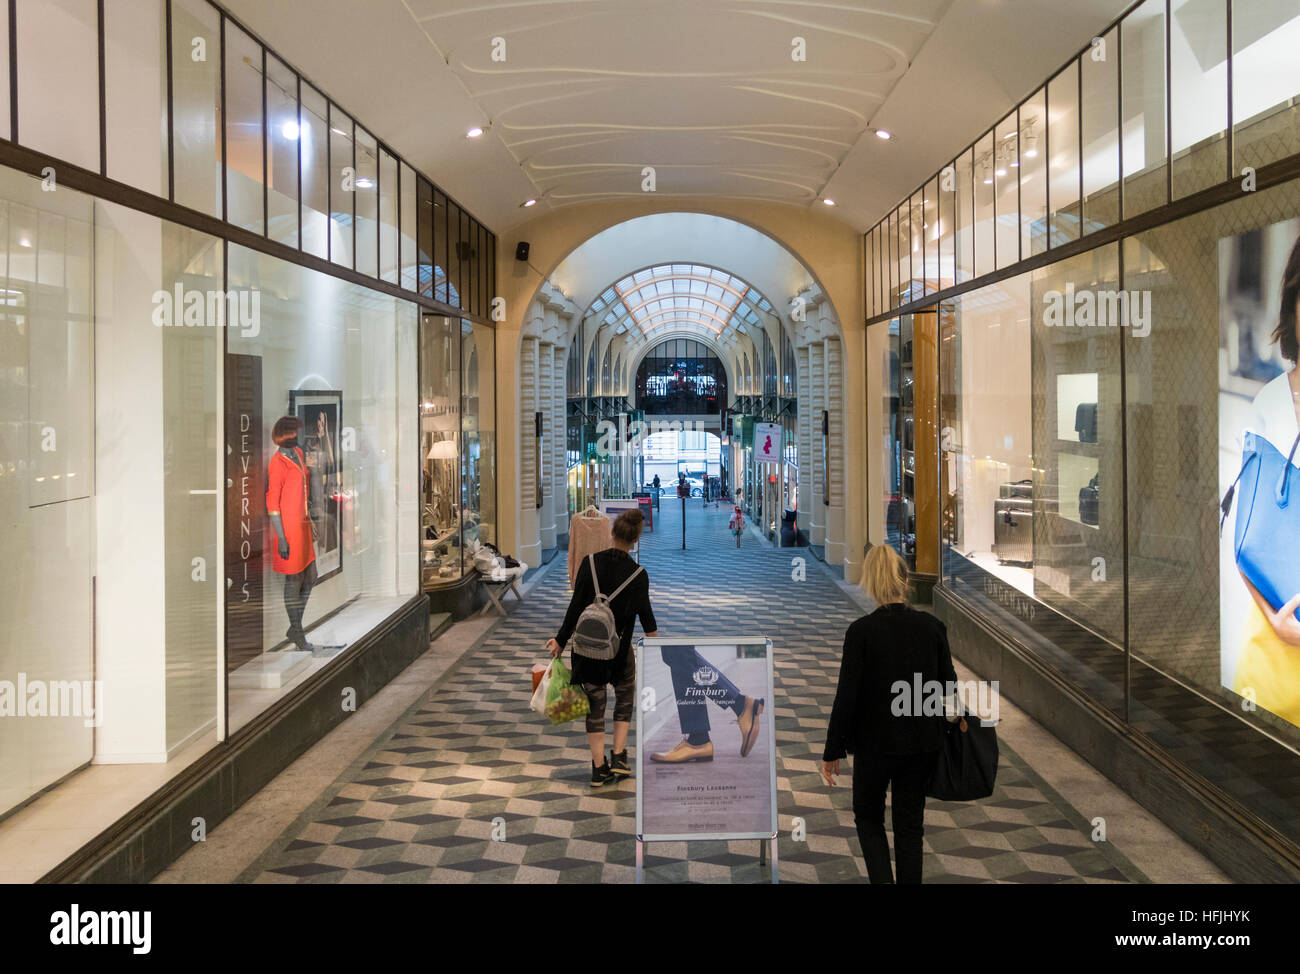 Shops inside the shopping arcade of Galleries Saint-François, Lausanne, Vaud, Switzerland - Stock Image